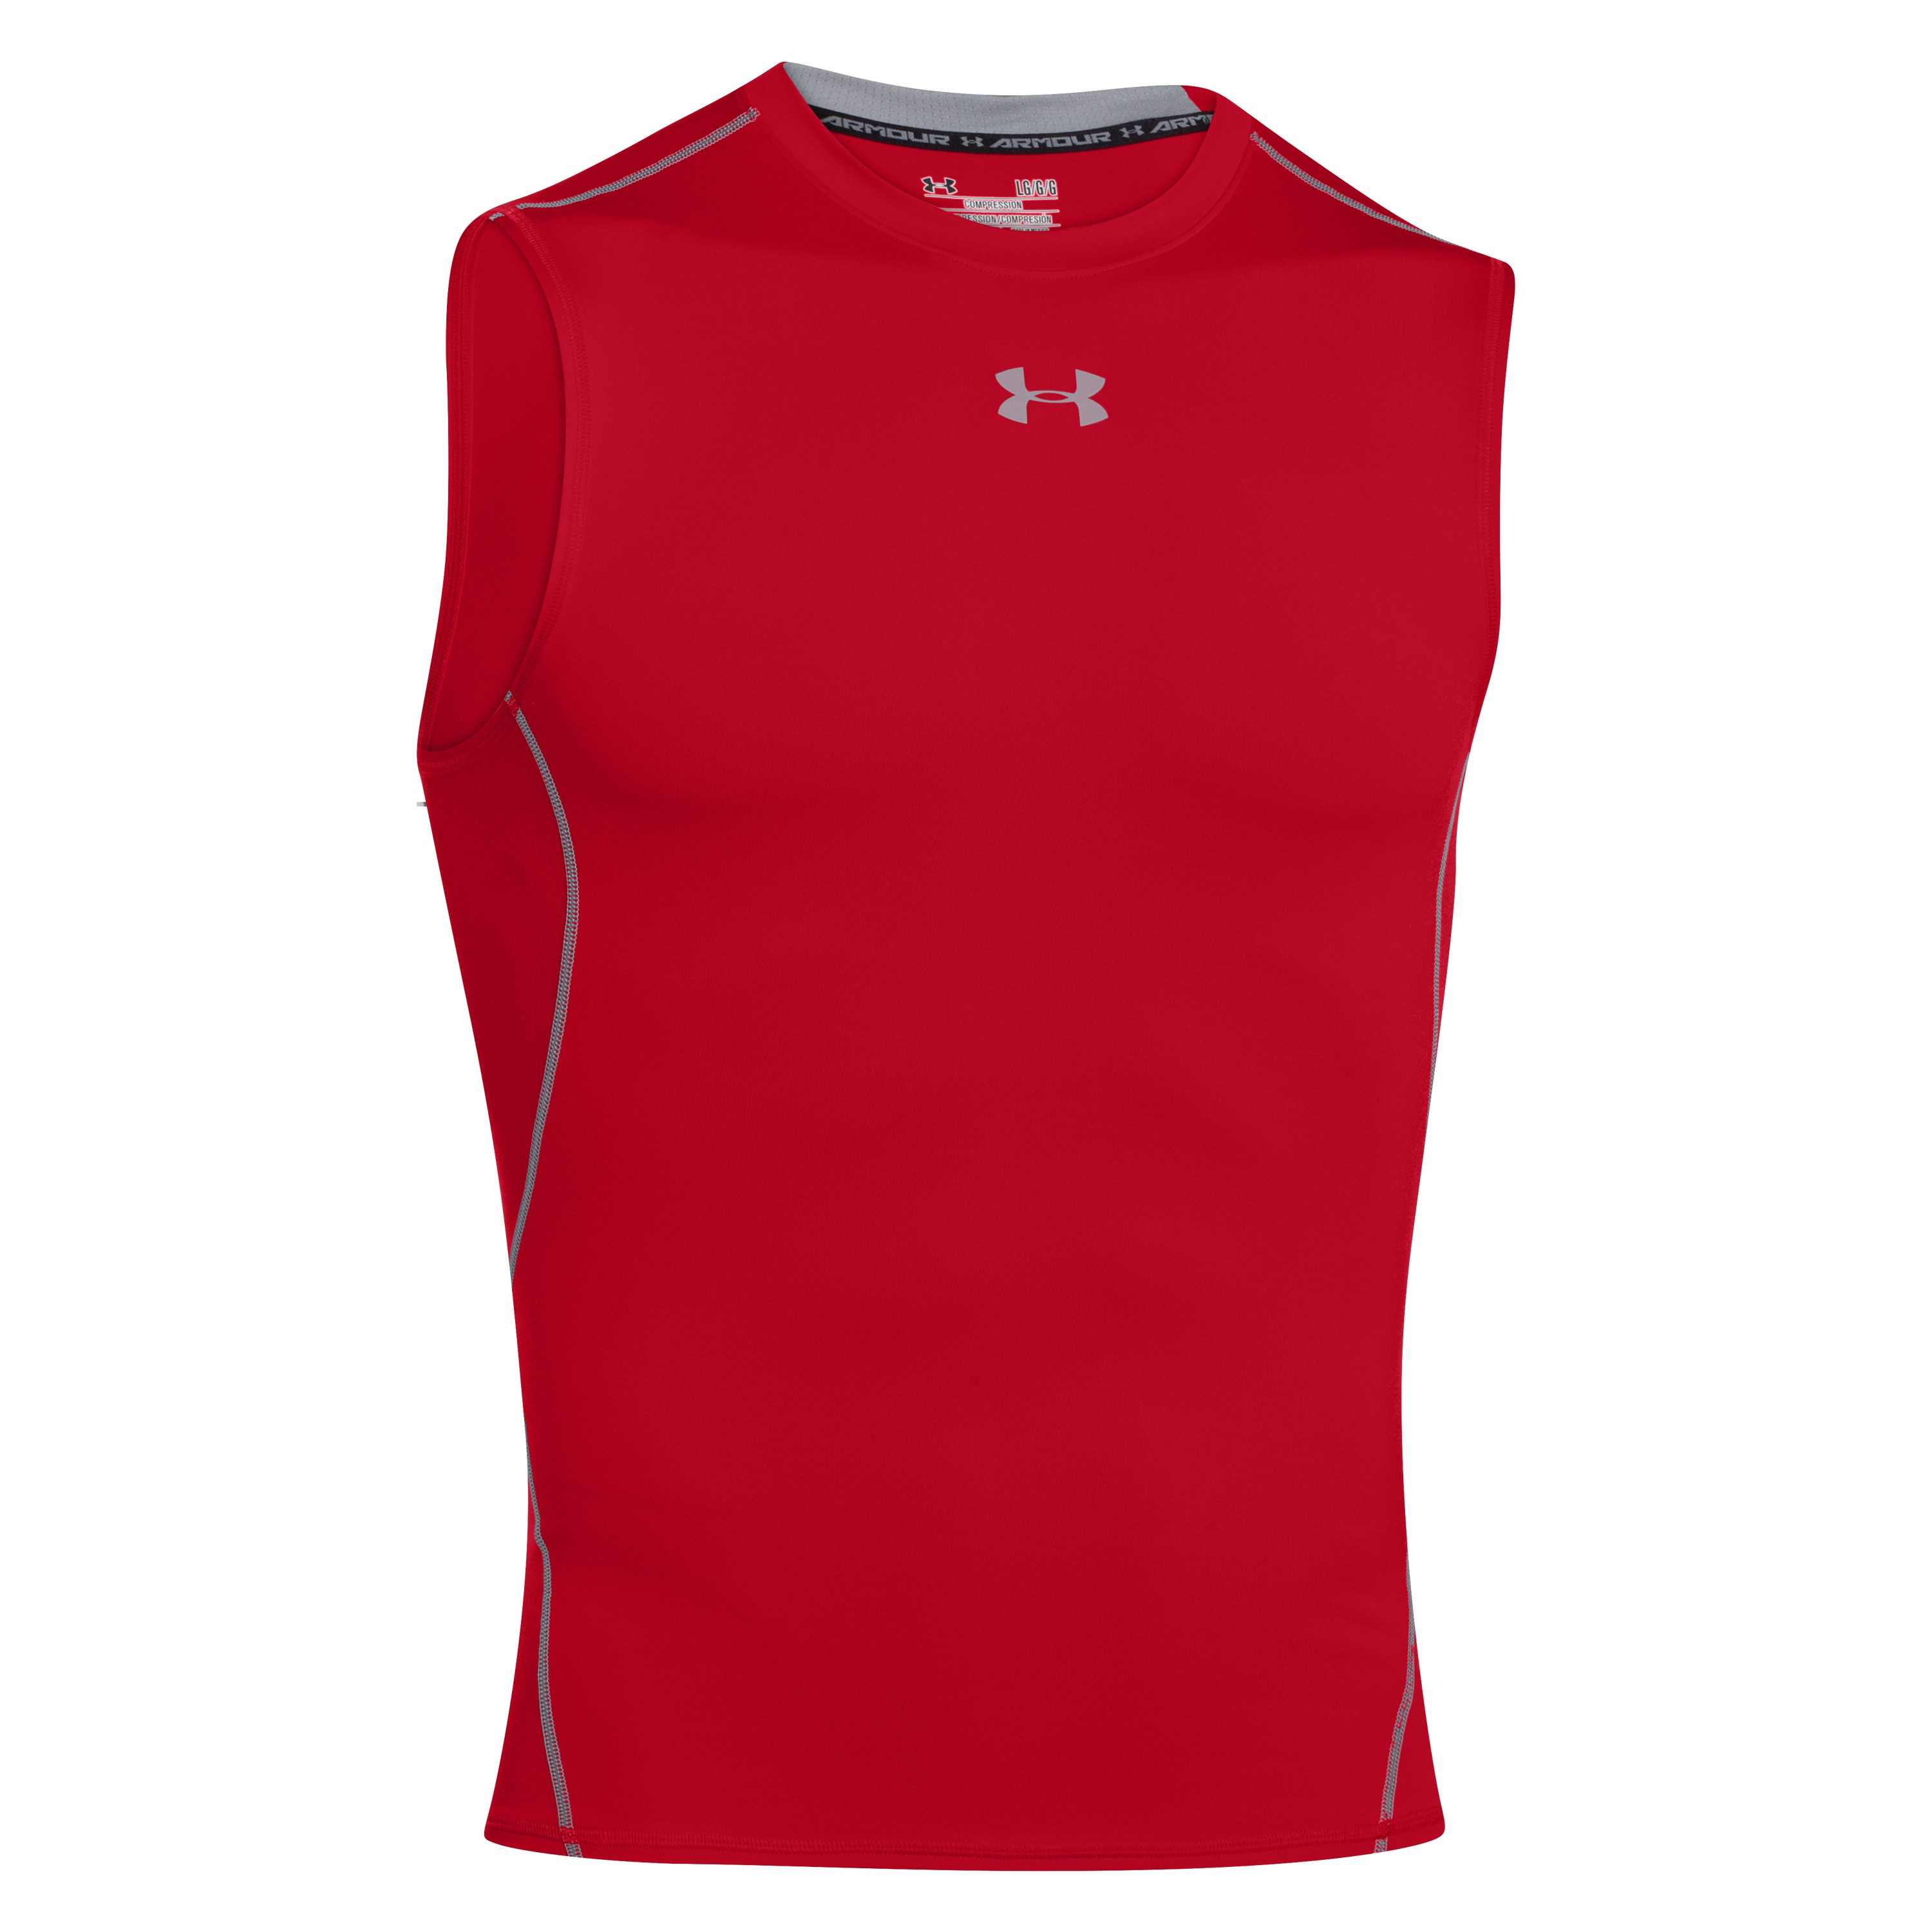 Under Armour Compression Shirt HeatGear Armour red/gray